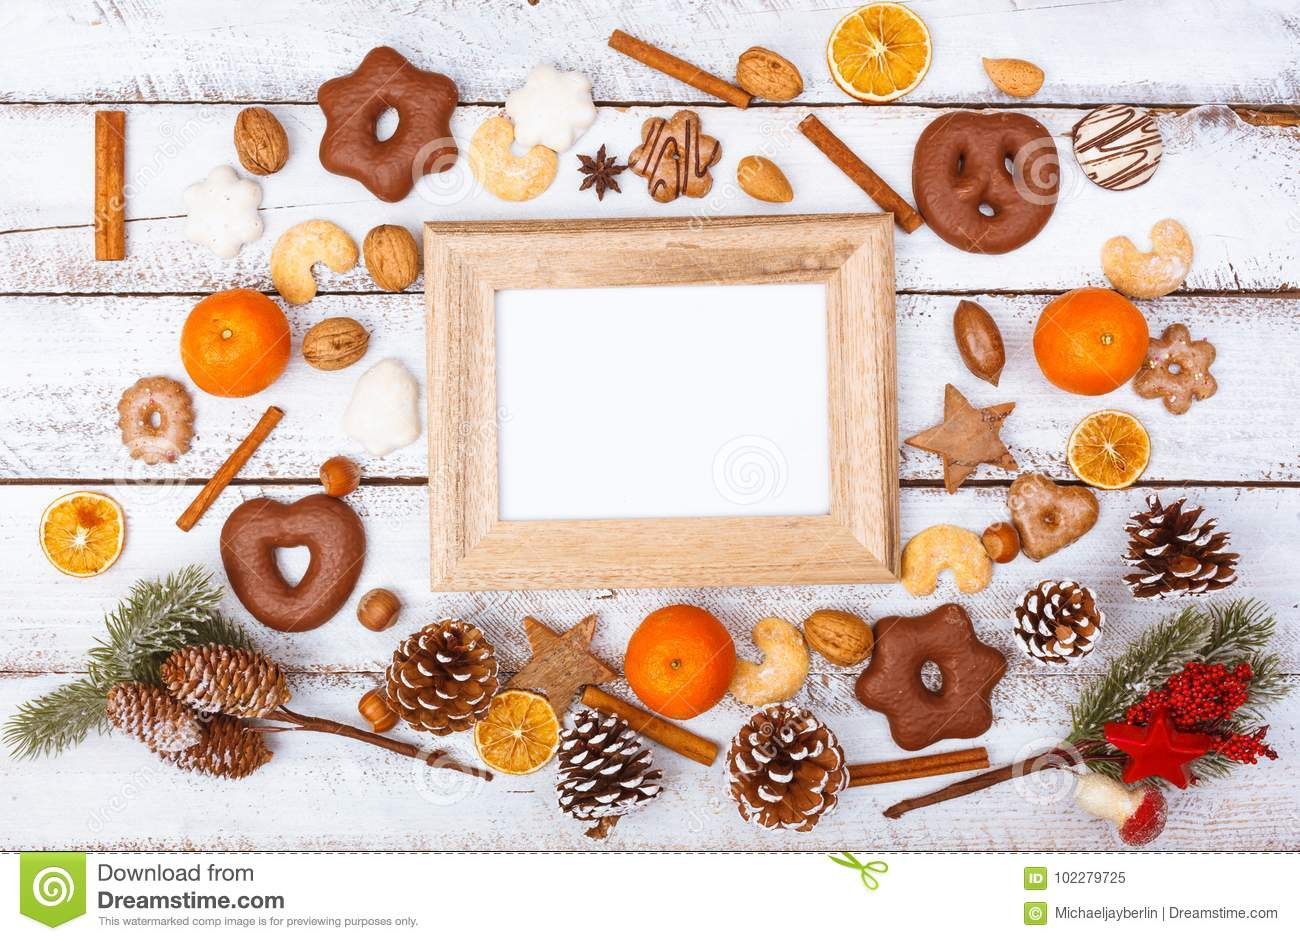 Christmas food flat lay with photo frame on white table